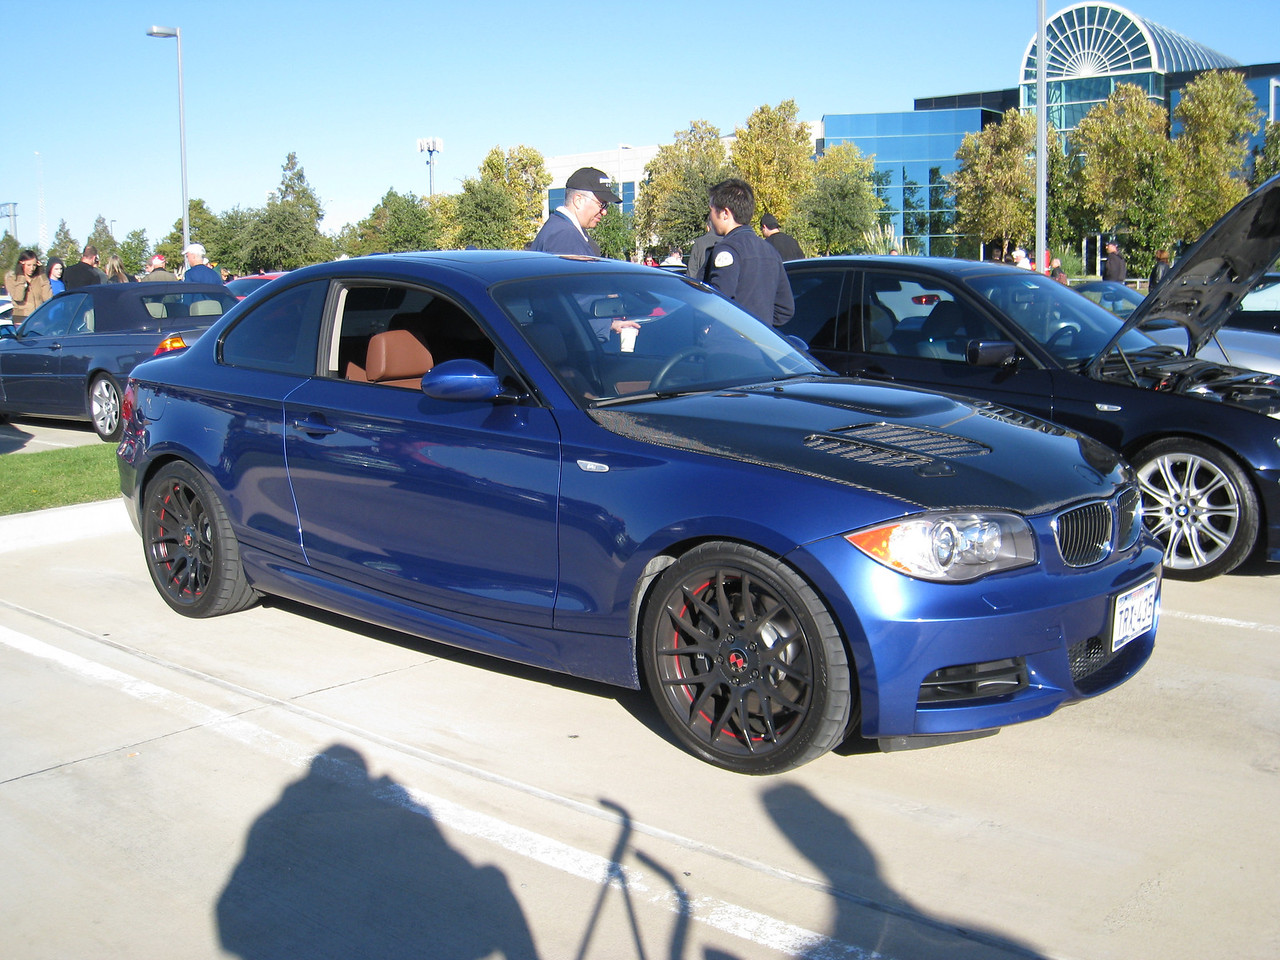 BMW 135i - pimped out a bit too much for my tastes.